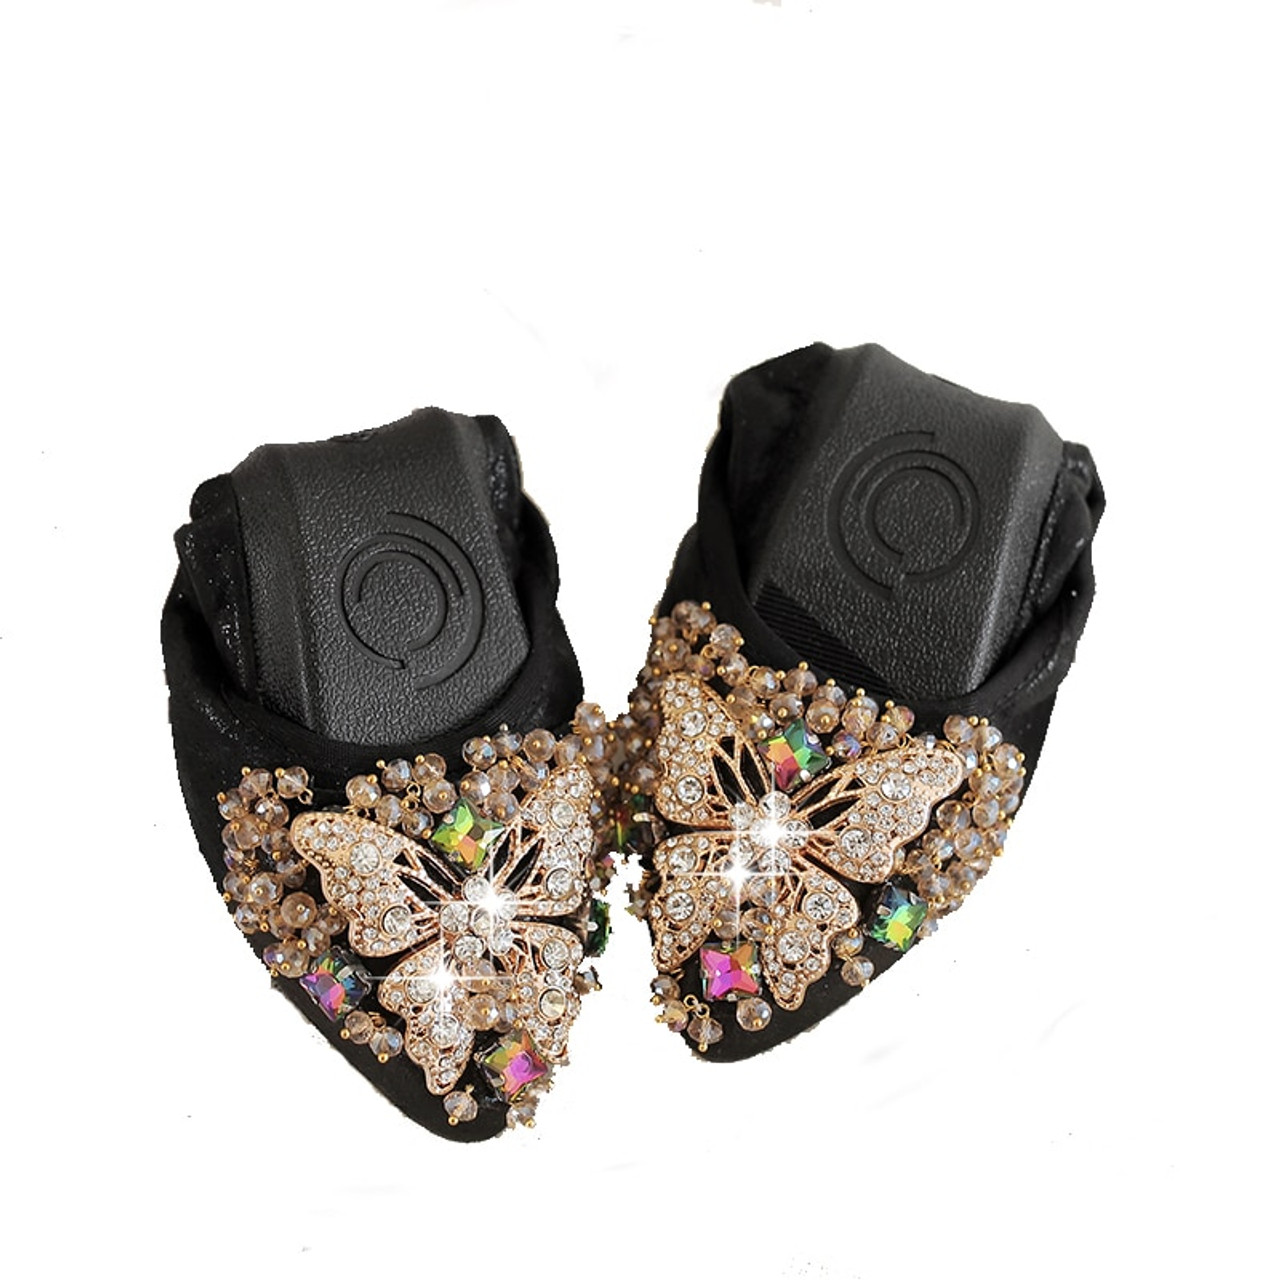 be759324917c91 ... Plus Size 35-42 Ladies Flat Shoes Fashion Bling Butterfly Rhinestone  Women Flats Casual Leather ...